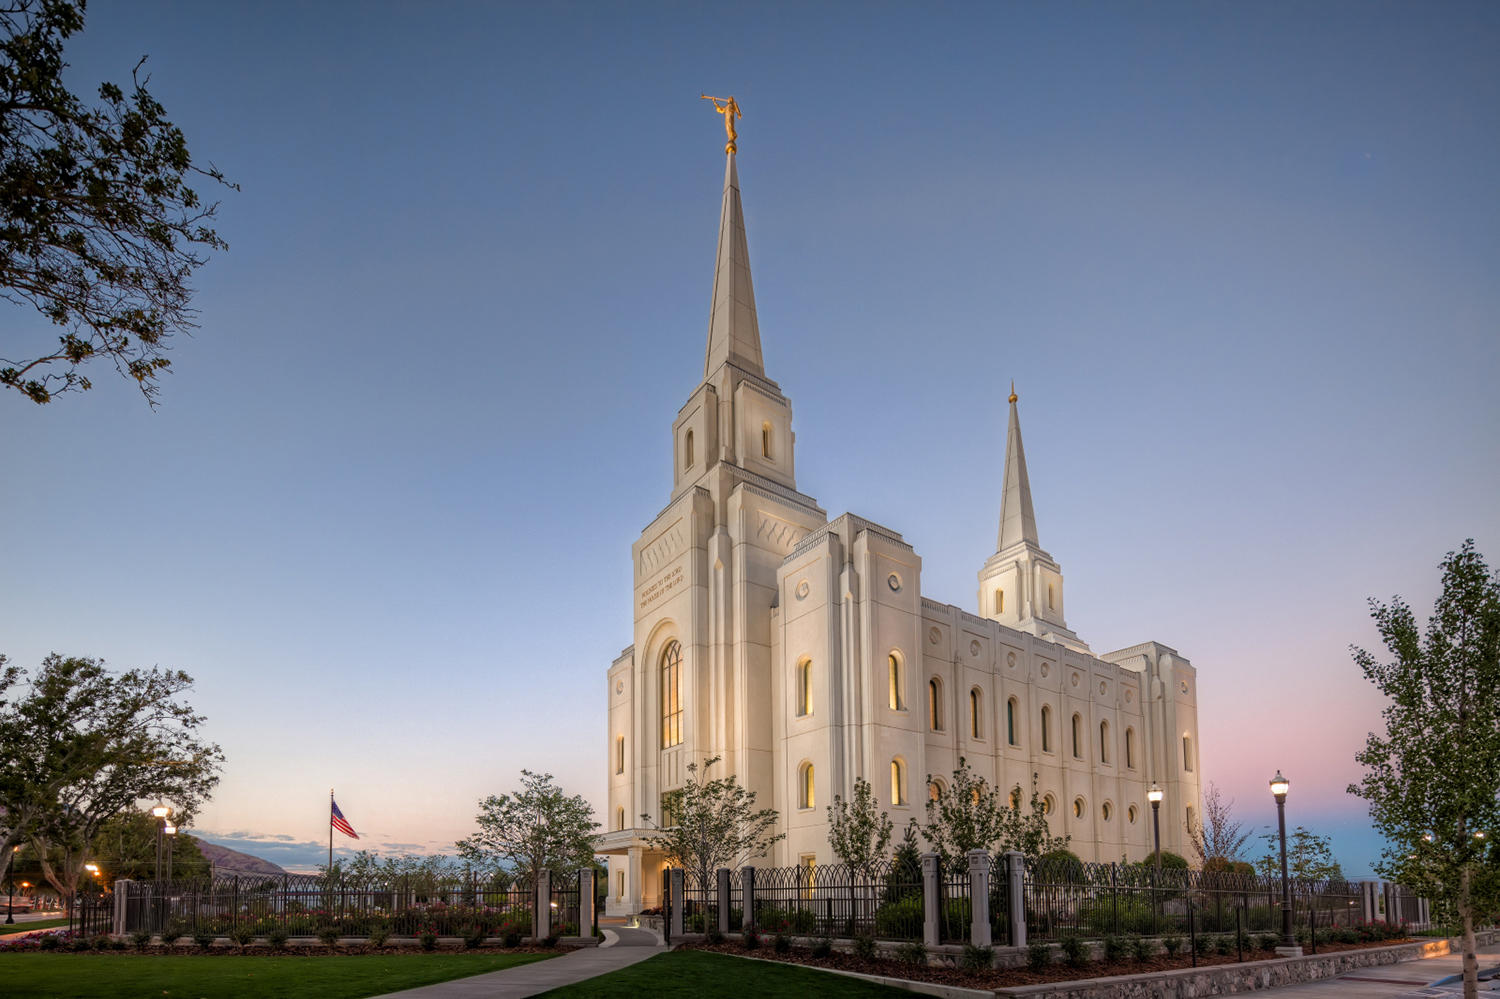 HERO - brigham-city-utah-temple-dawn-1093979-print.jpg